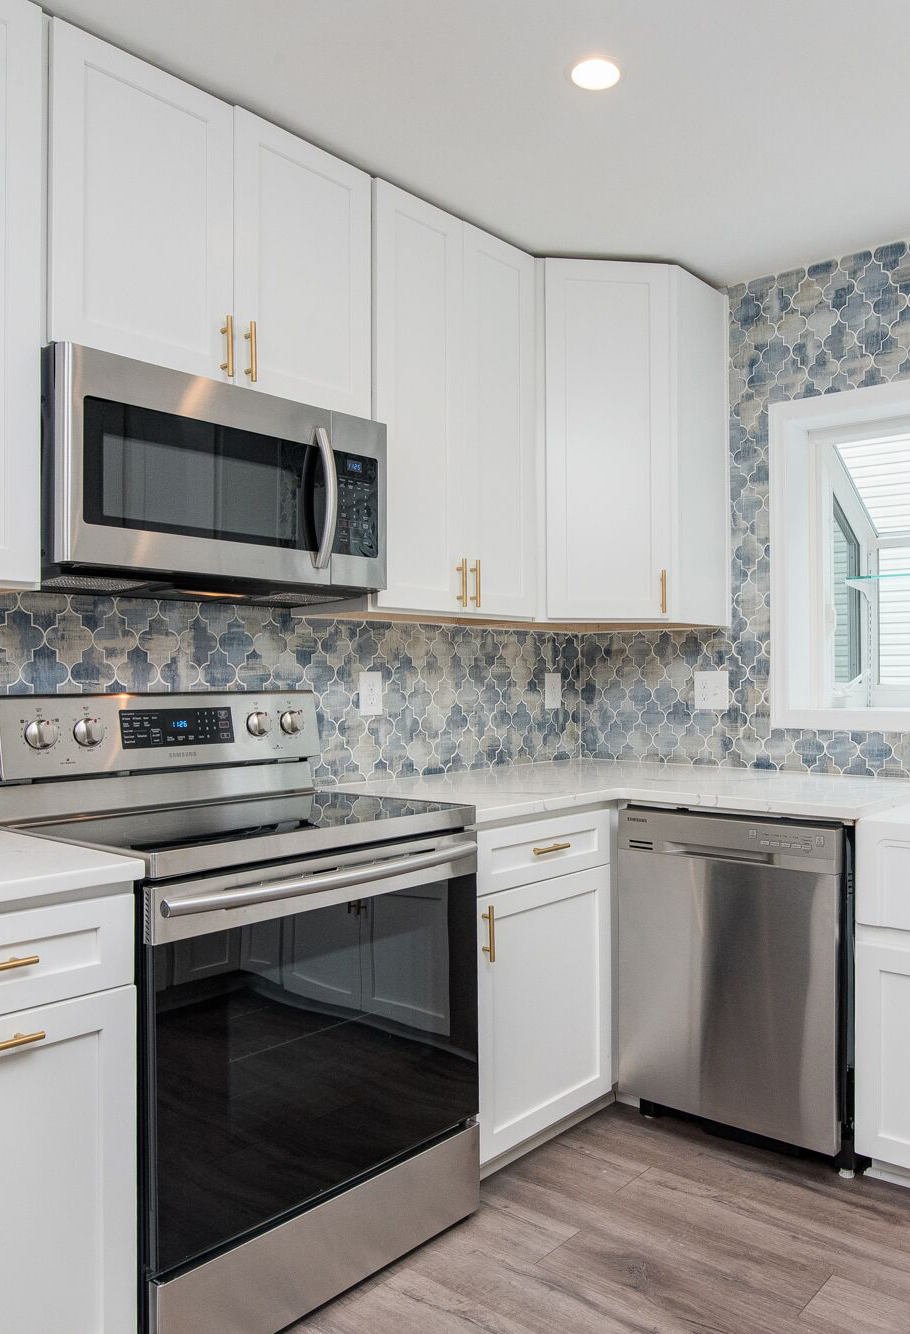 White Cabinets With Colorful Backsplash Online Kitchen Cabinets Cabinet Cabinets Online